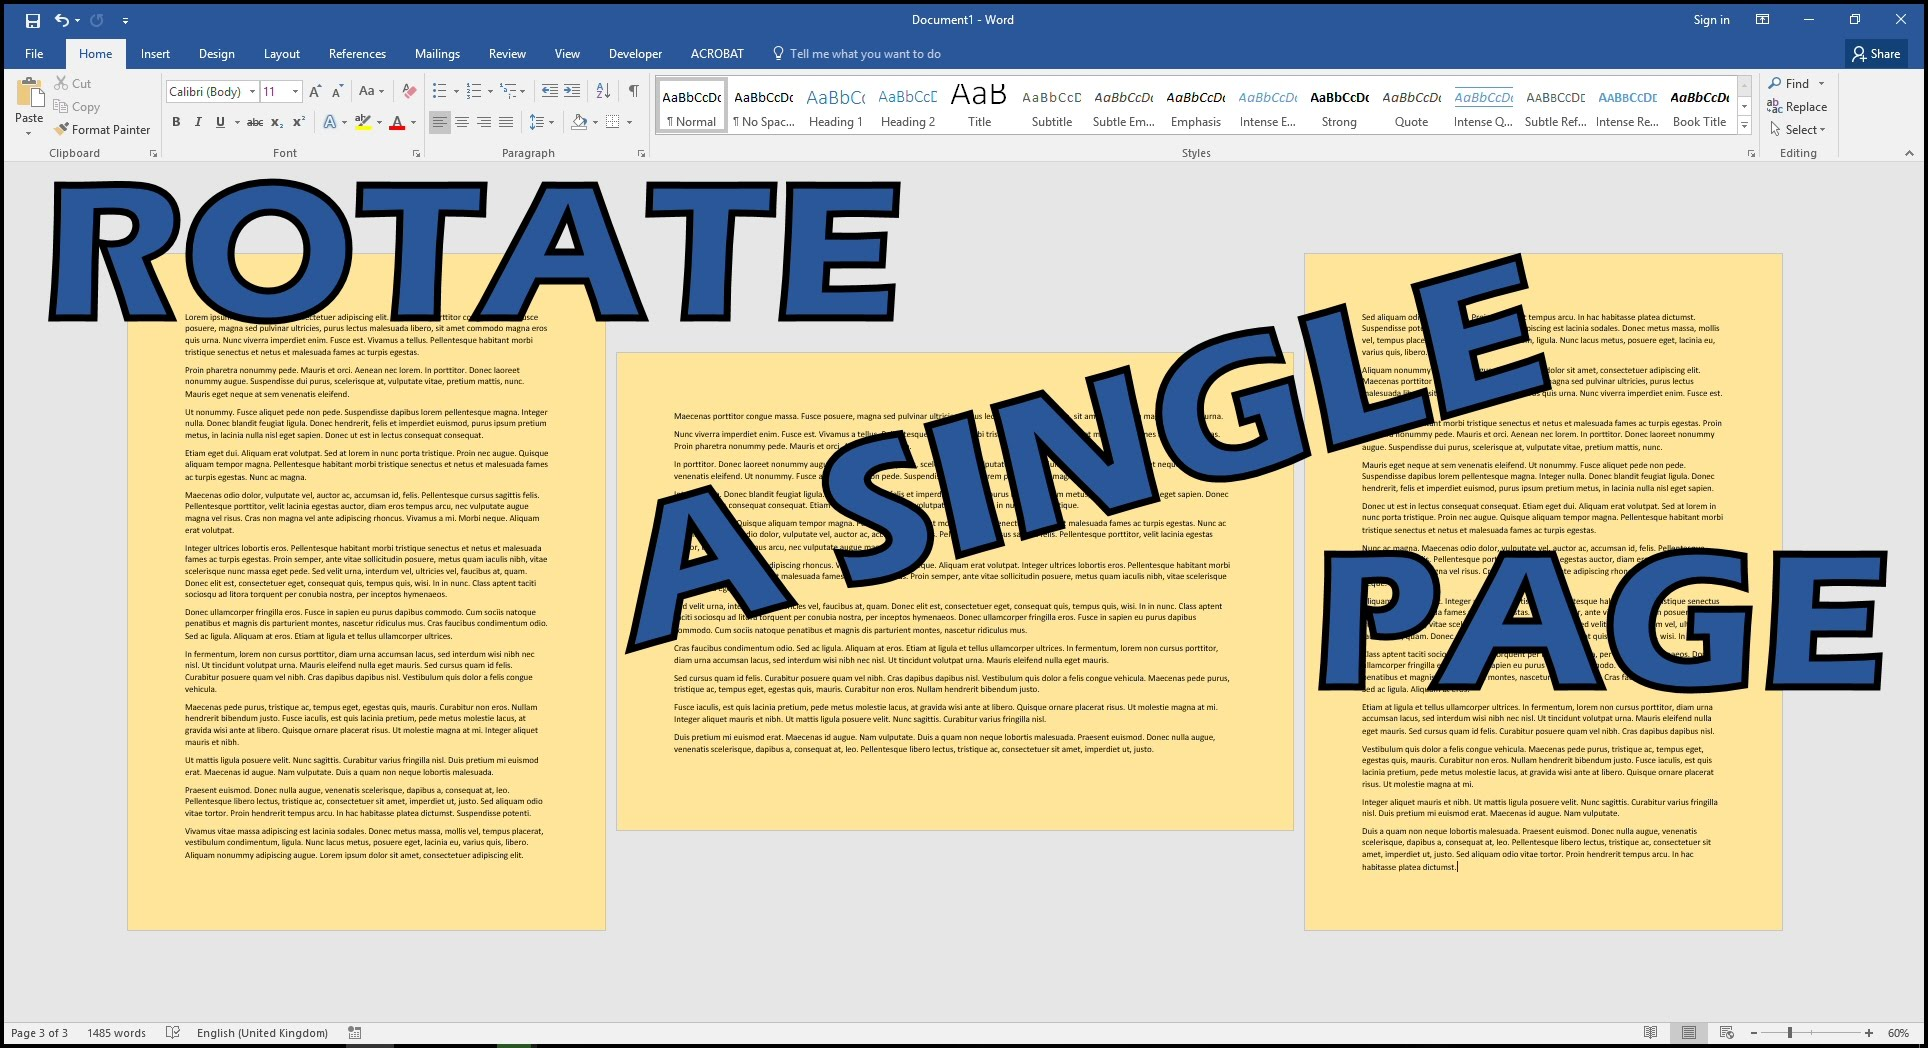 How to Rotate Picture in Word